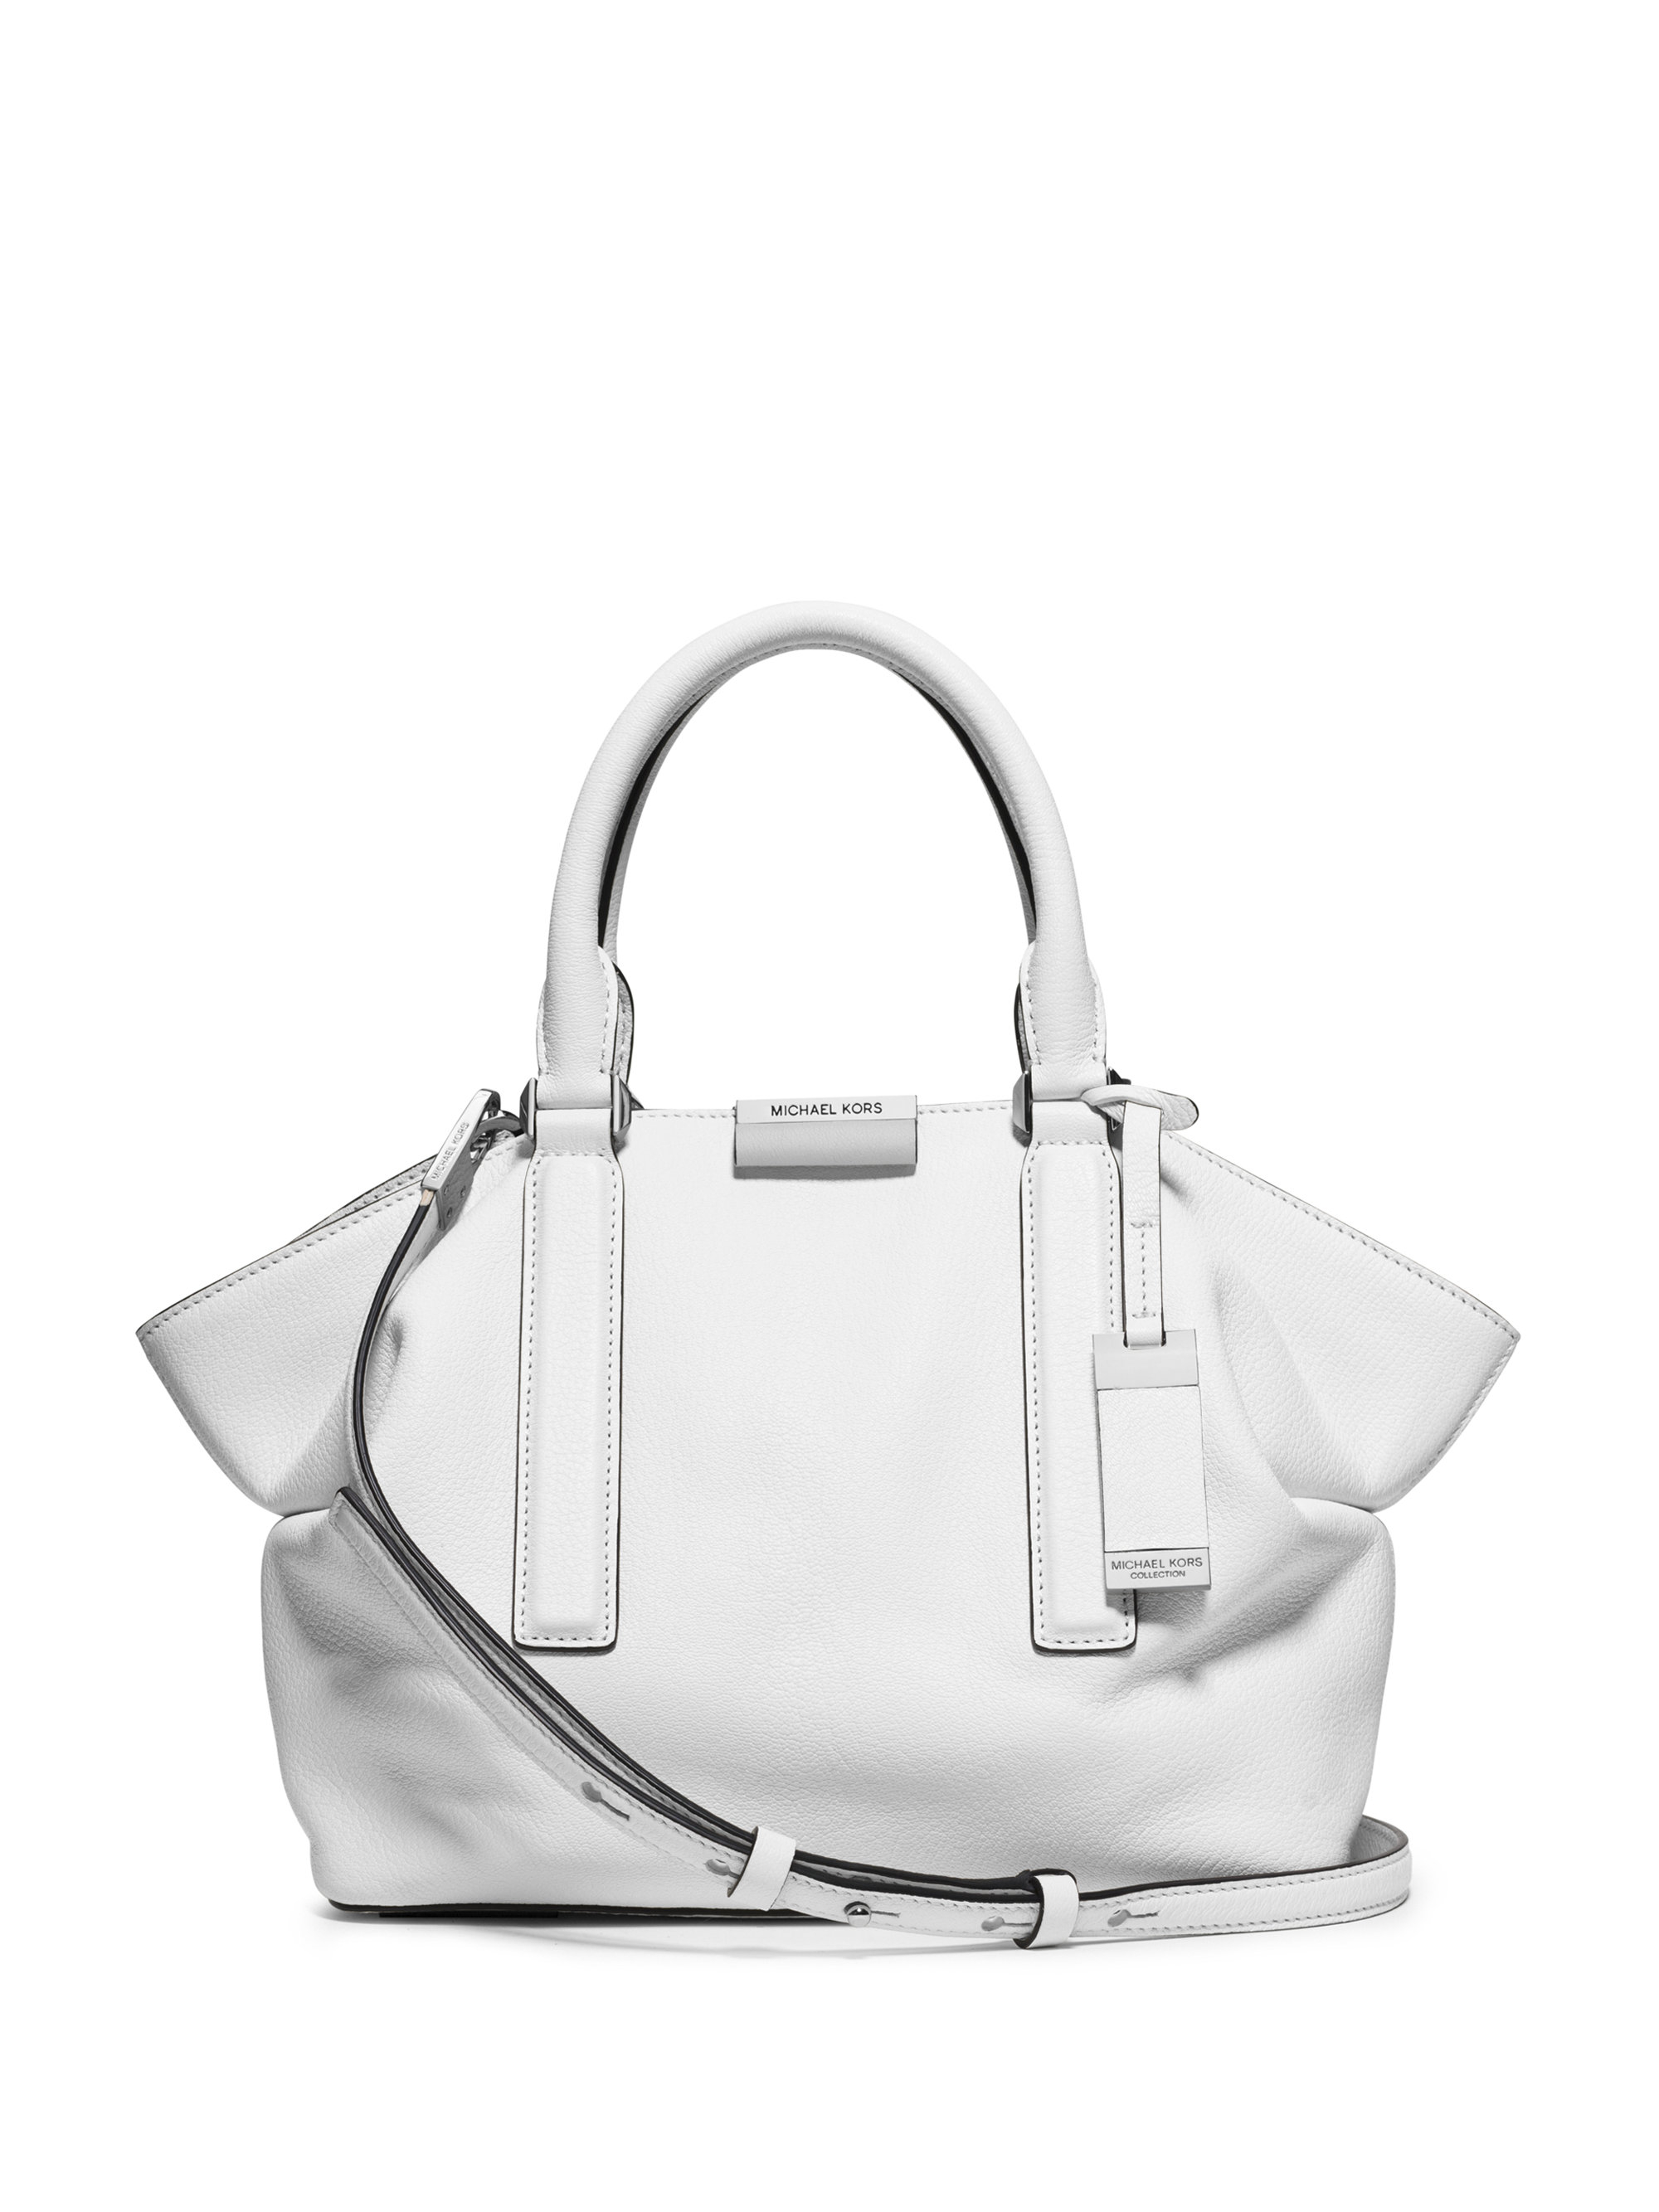 6c7016c68873 Michael Kors Lexi Small Satchel in White - Lyst